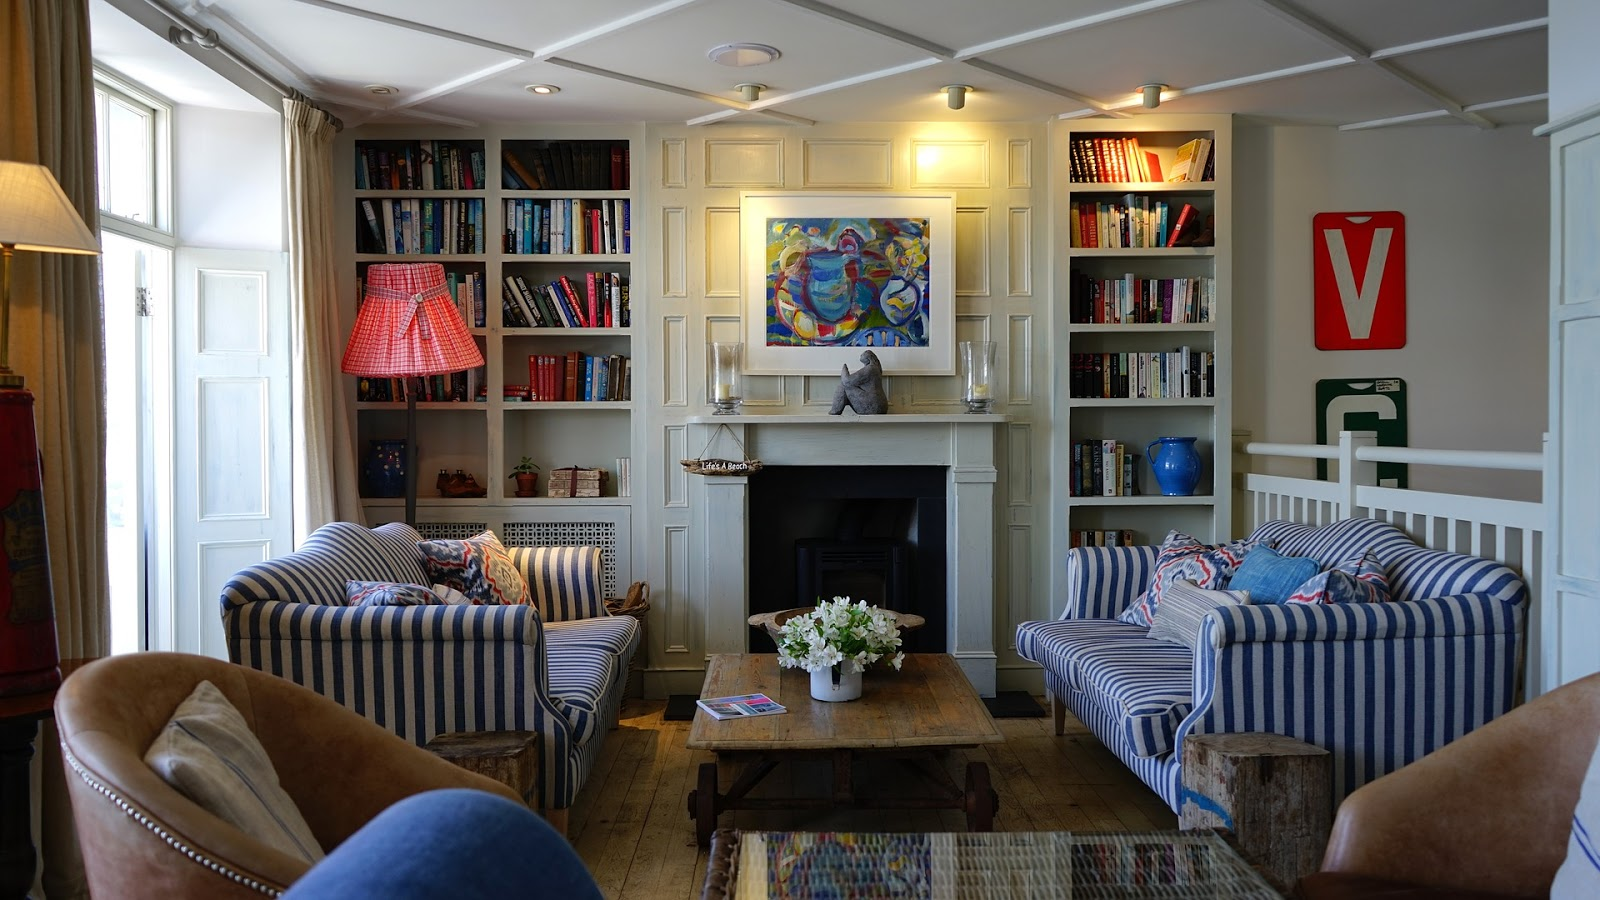 It\u0027s possible to transform your home by making small changes that can make a big difference to your space. We are therefore offering helpful advice on how ... & How to Modernise Your Home - Bakes Books And My Boys